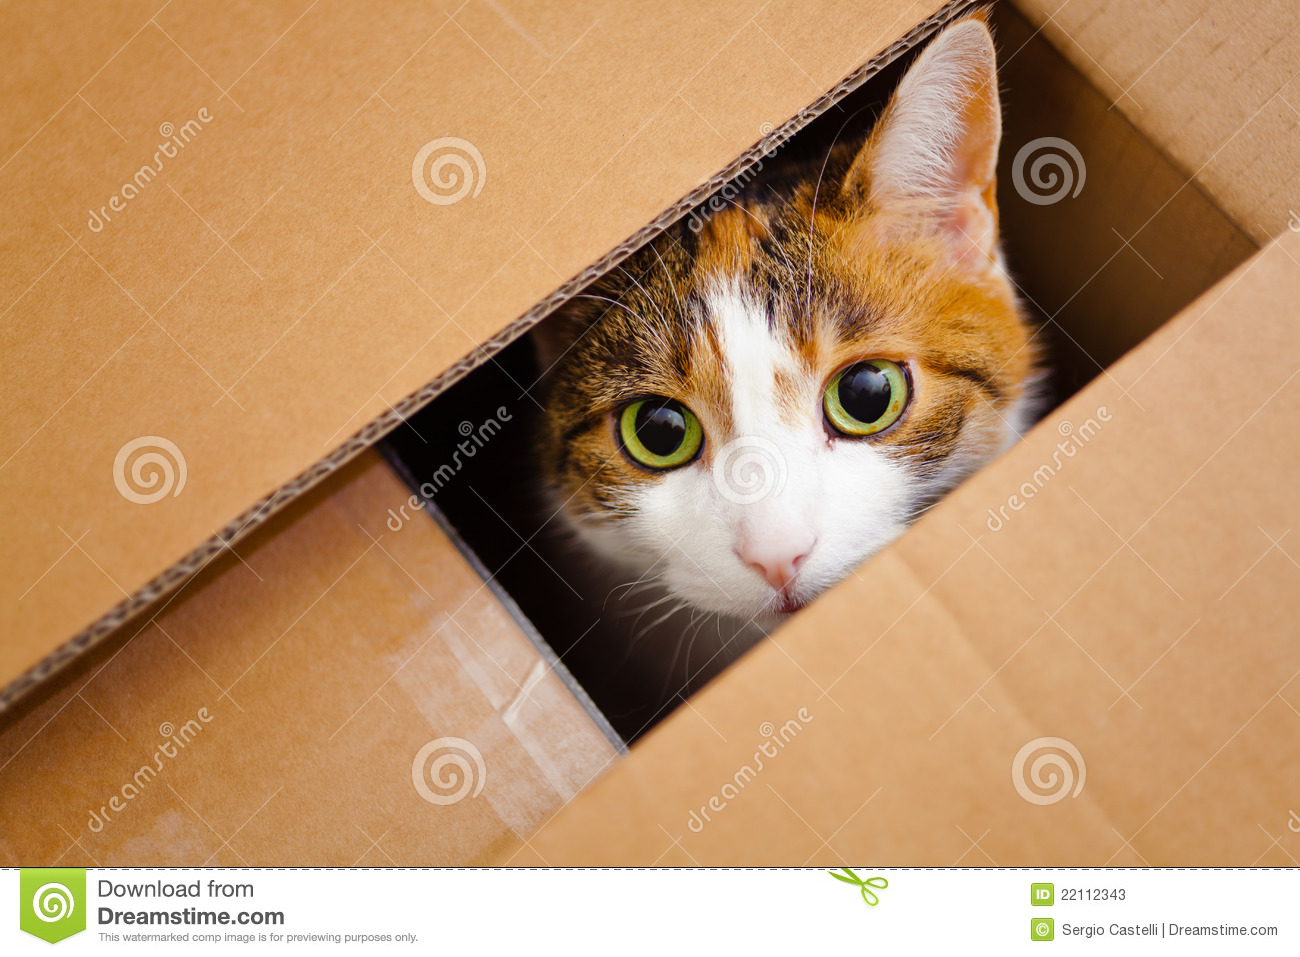 Cat In A Box Stock Photos - Image: 22112343